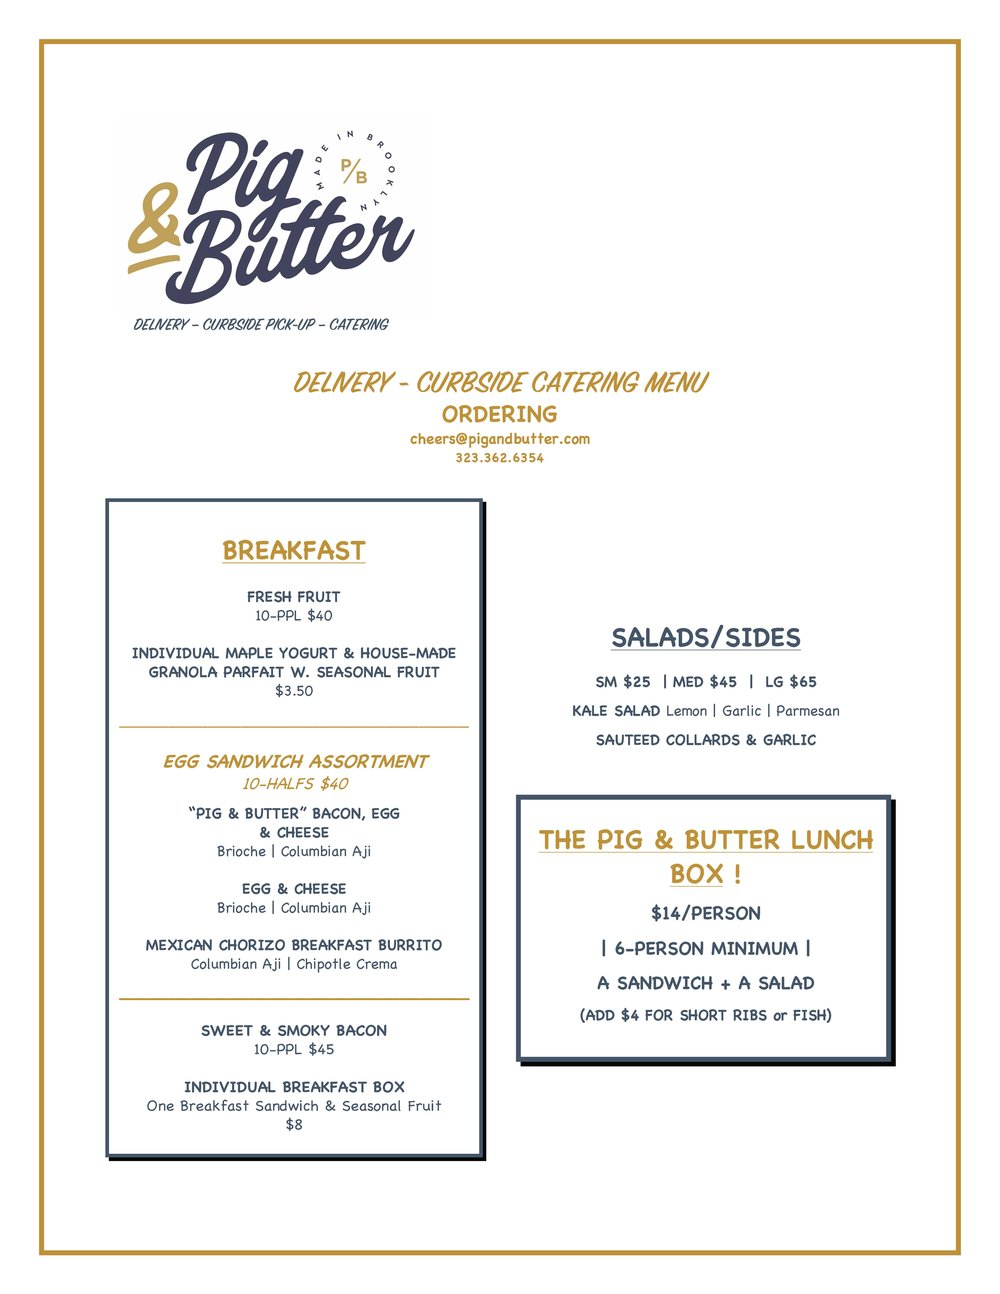 PIG & BUTTER CATERING MENU_Page_1.jpg